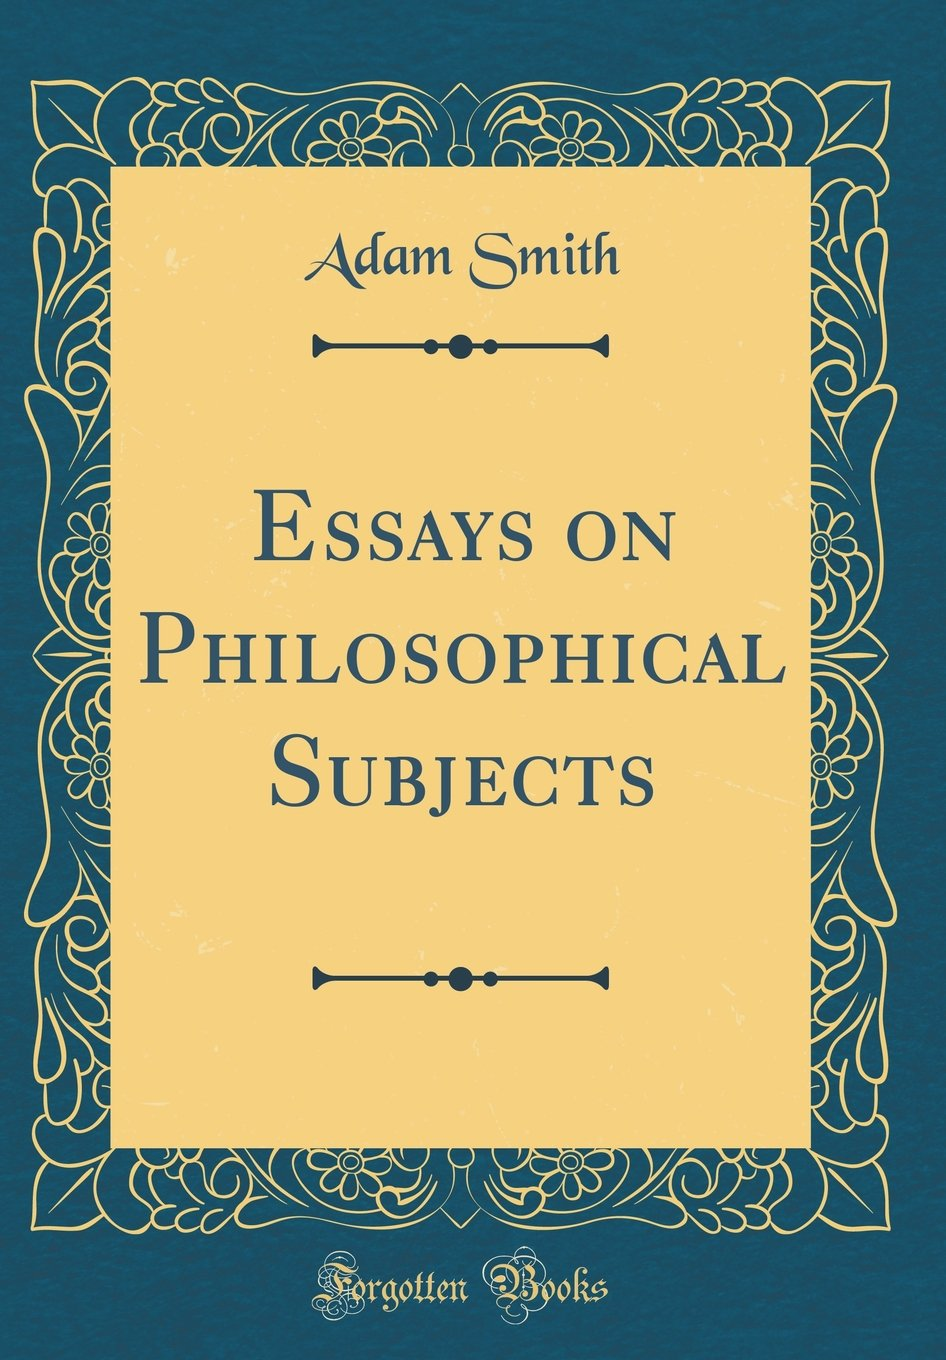 007 Rddwarl Essays On Philosophical Subjects Essay Best Summary Adam Smith Full